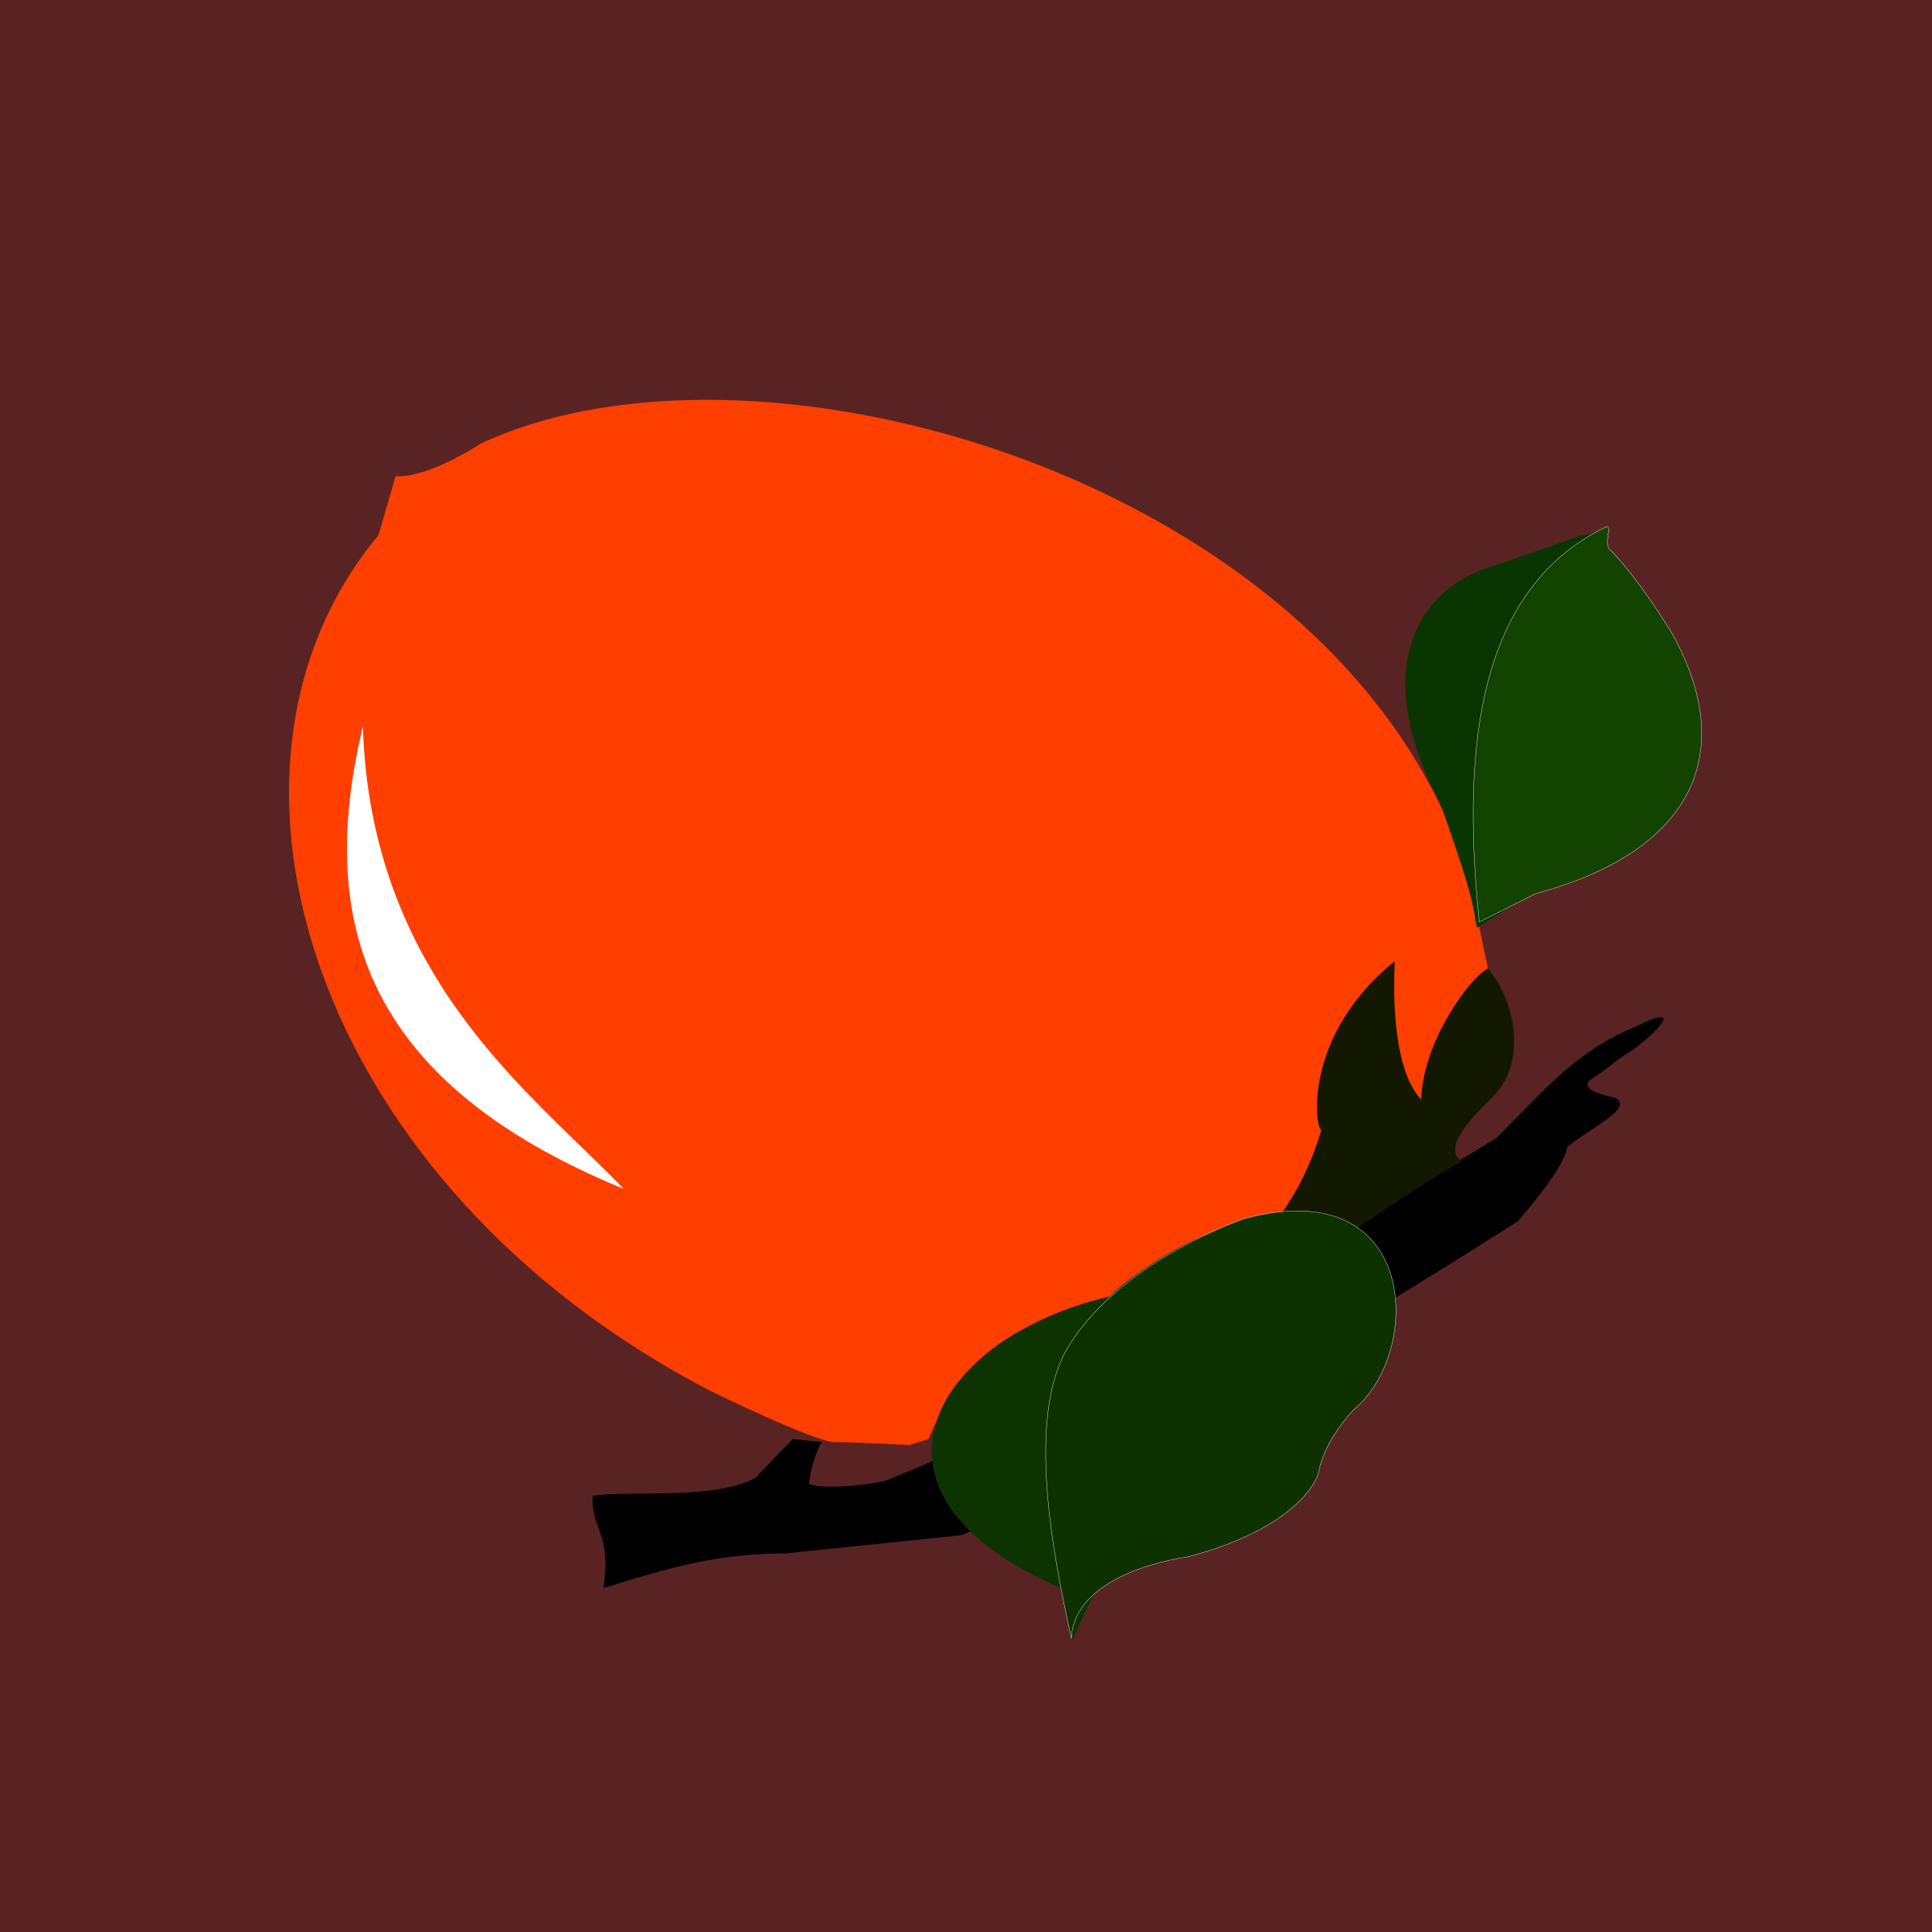 persimmon by yamachem